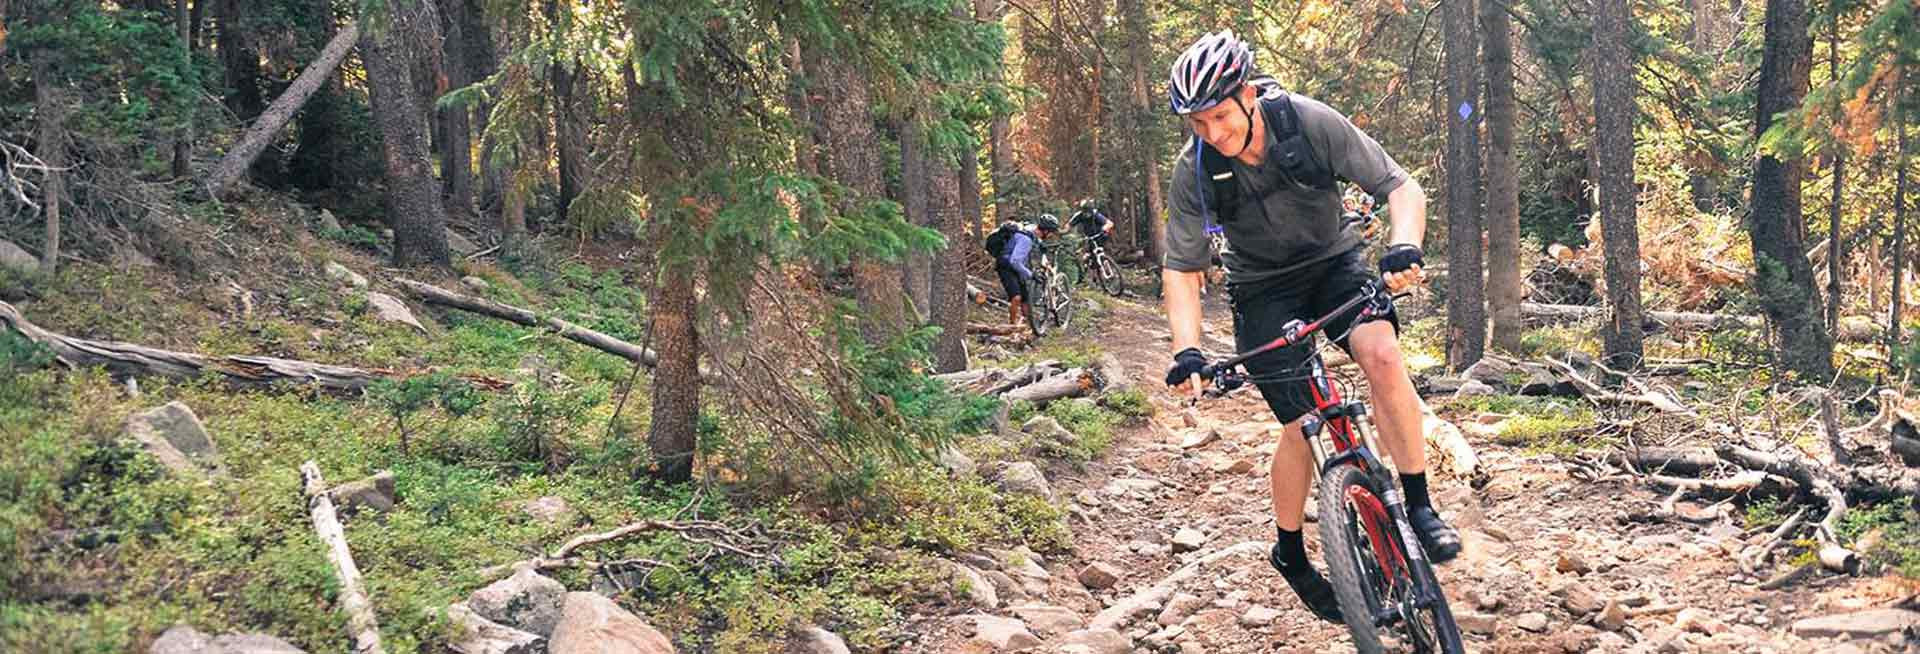 Mountain bikers on a forest trail.